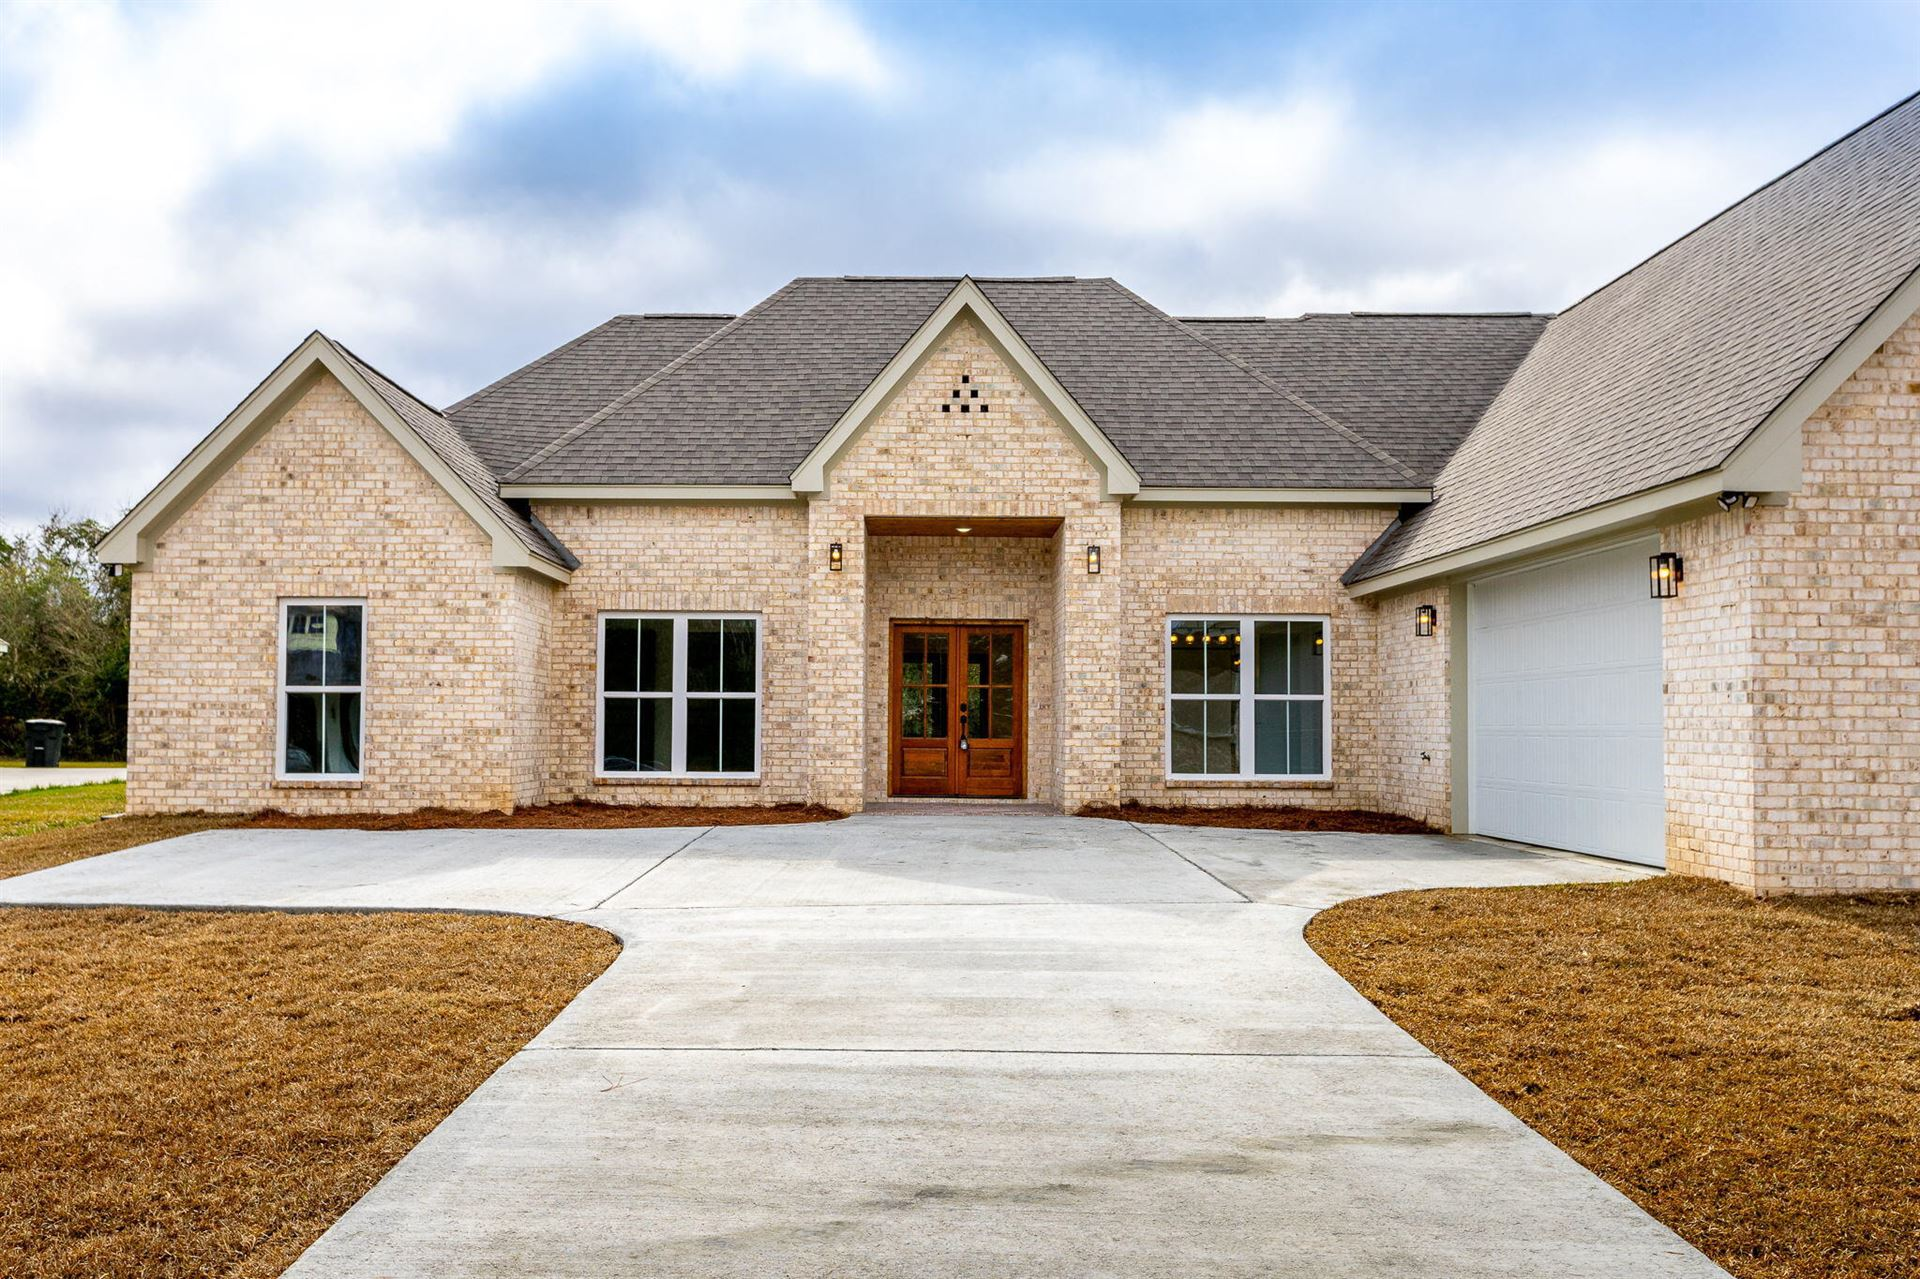 Photo of 7 French Cove, Petal, MS 39465 (MLS # 127365)